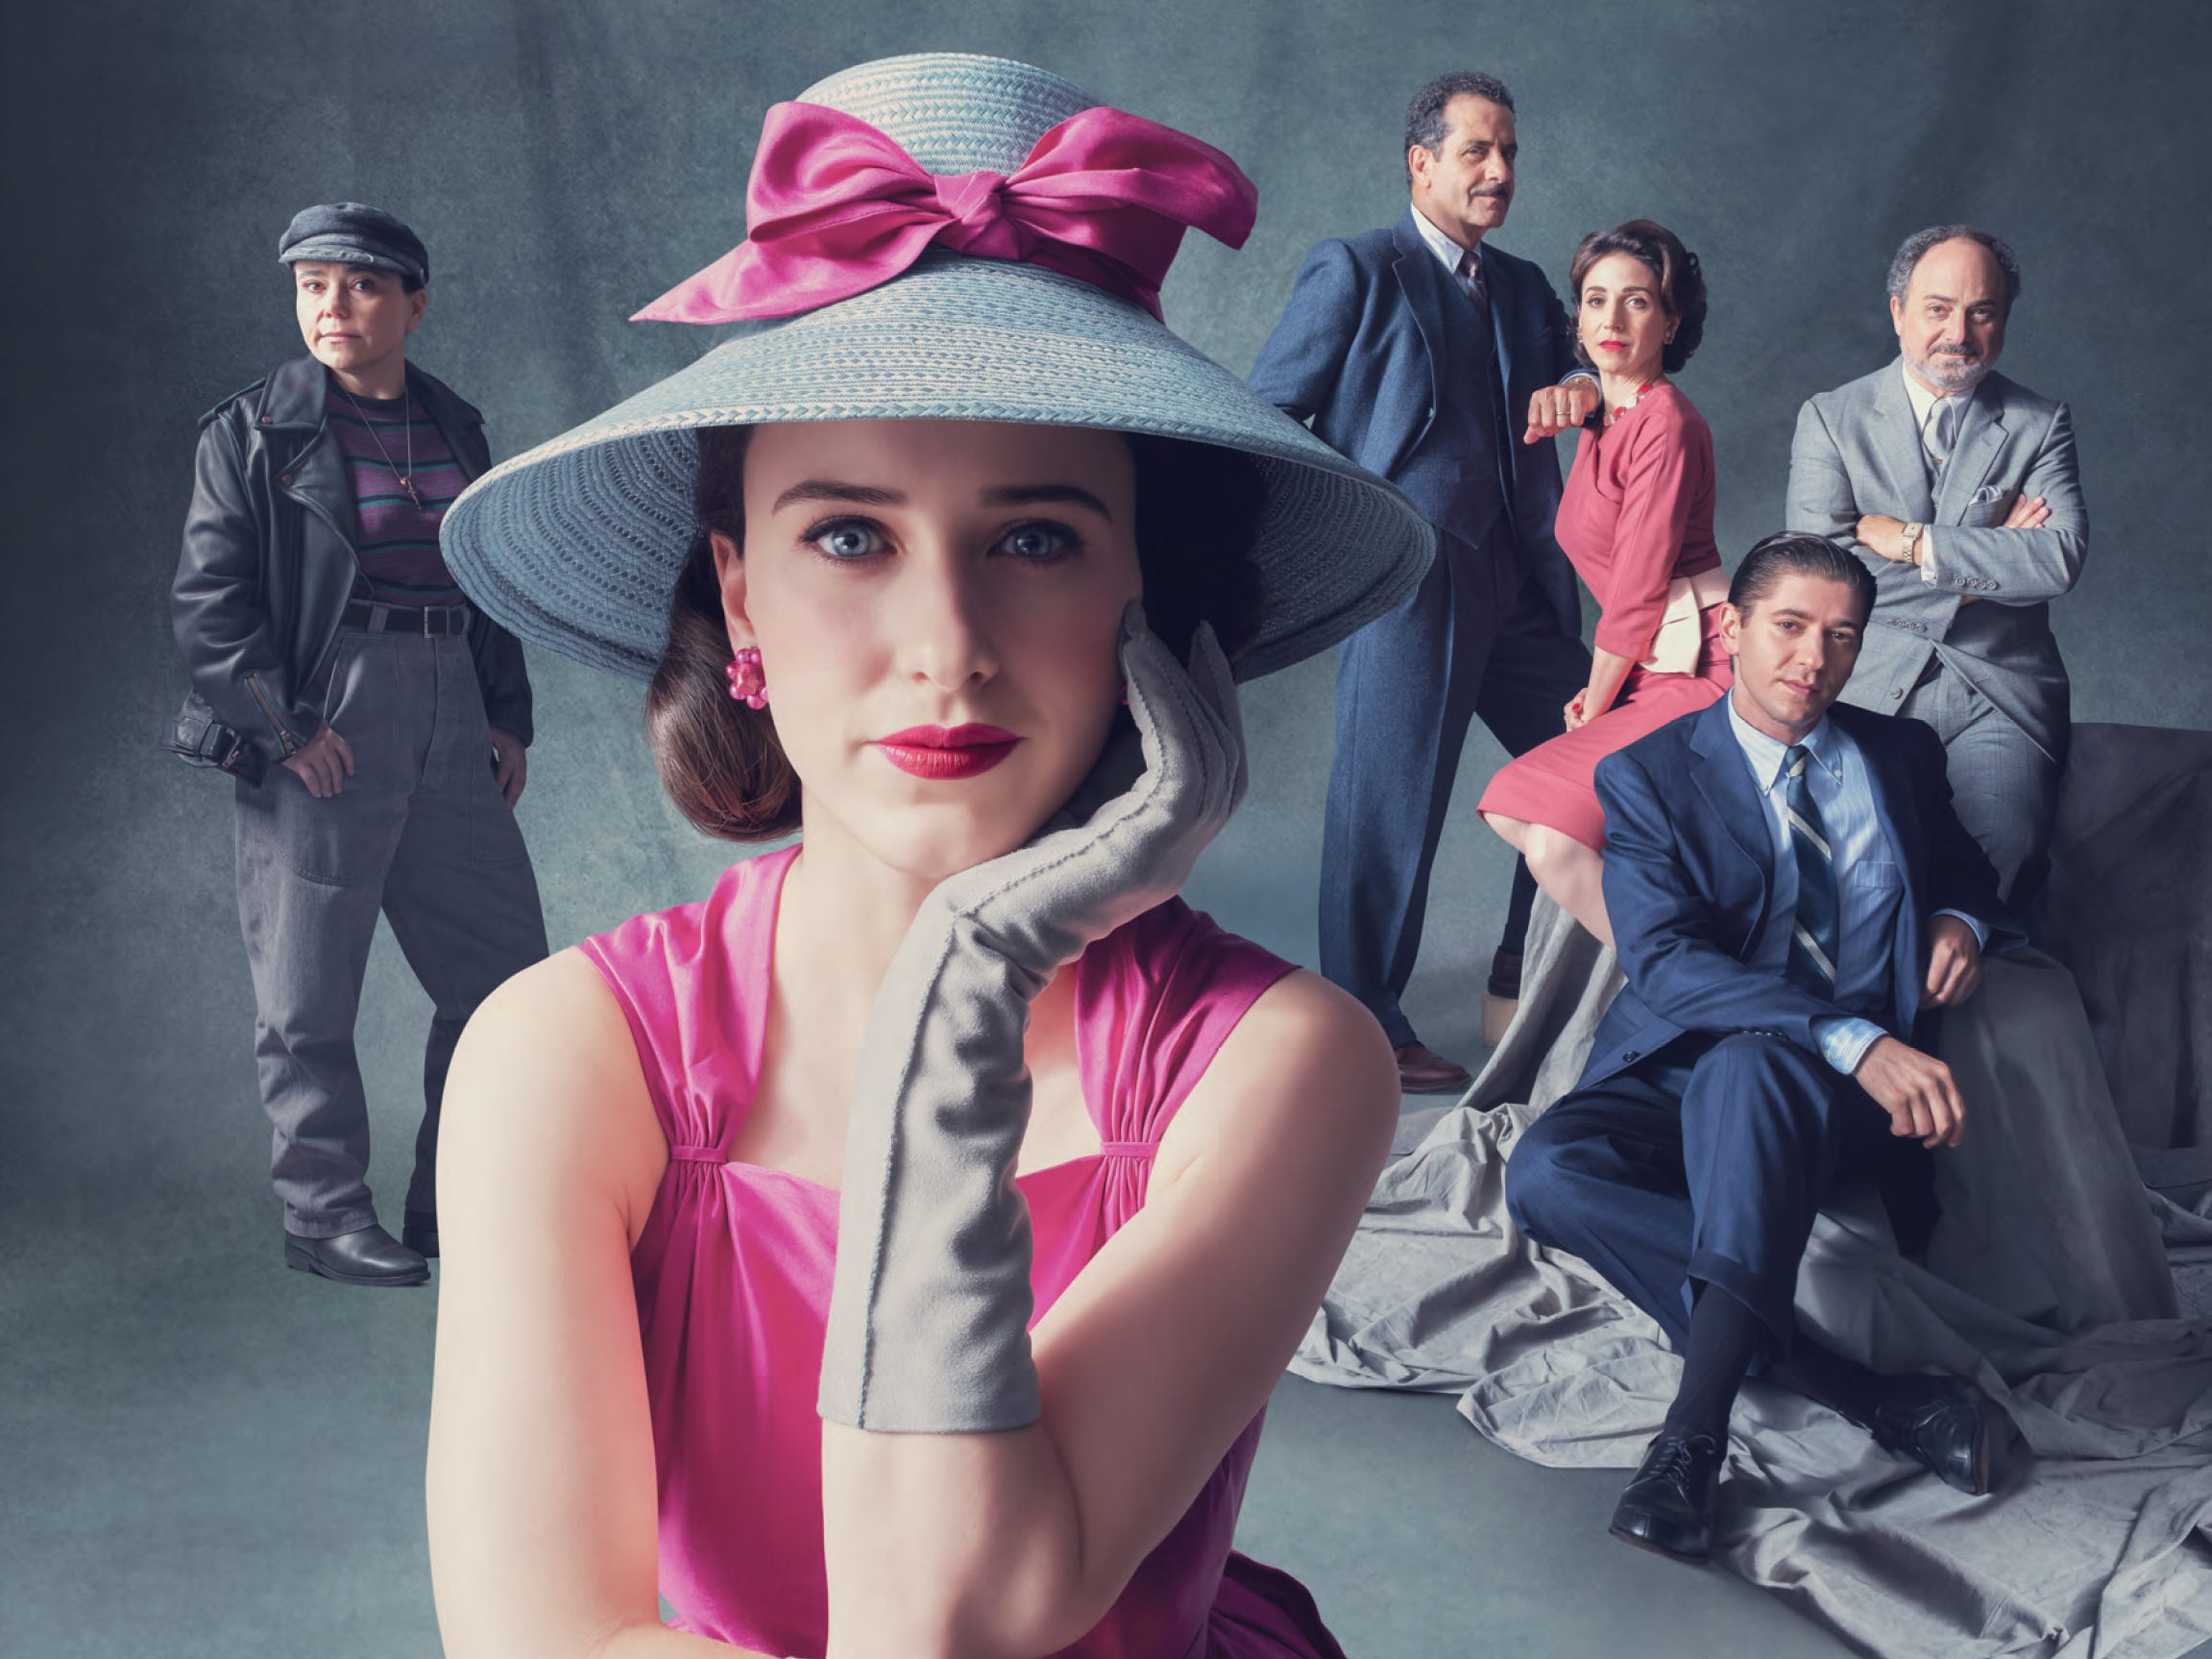 A sneak peek at the new season of 'The Marvelous Mrs. Maisel'